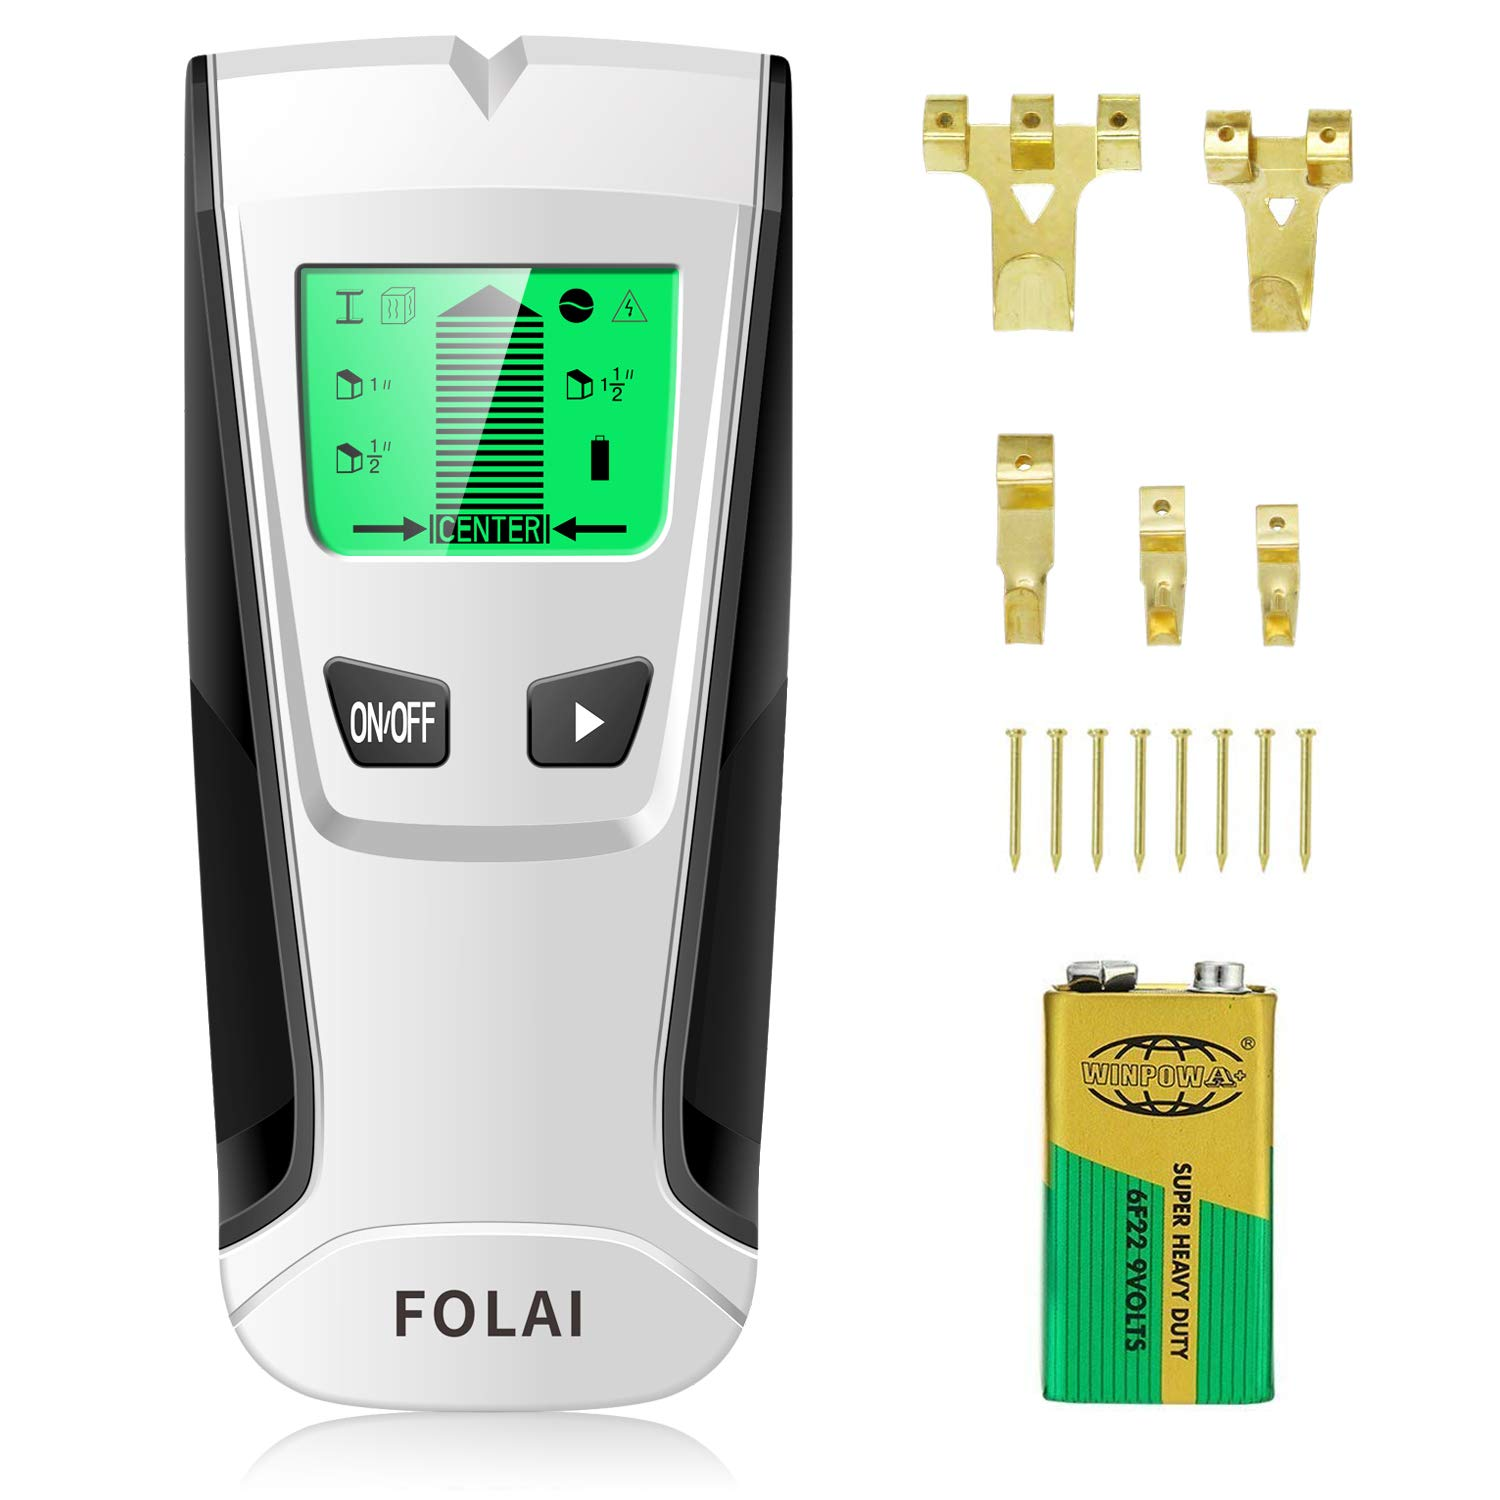 Stud Finders Wall Finder Wall Scanner Center-Finding Stud Finder with Sound Warning for AC Wire, Metal, Wall Studs, Wood